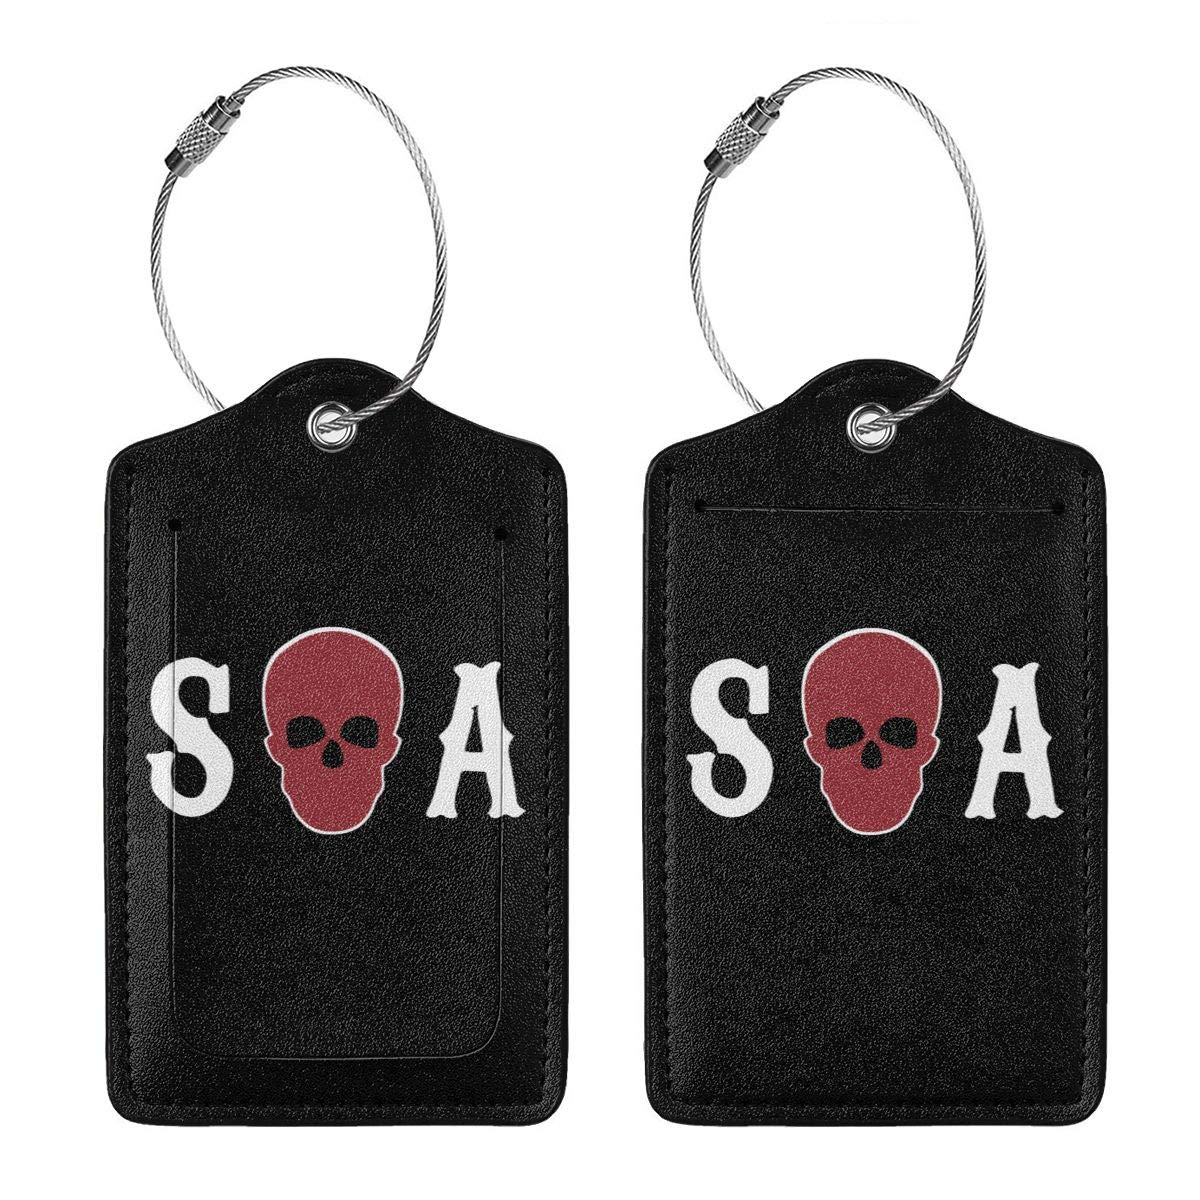 Sons Of Anarchy Season Leather Luggage Tag Travel ID Label For Baggage Suitcase